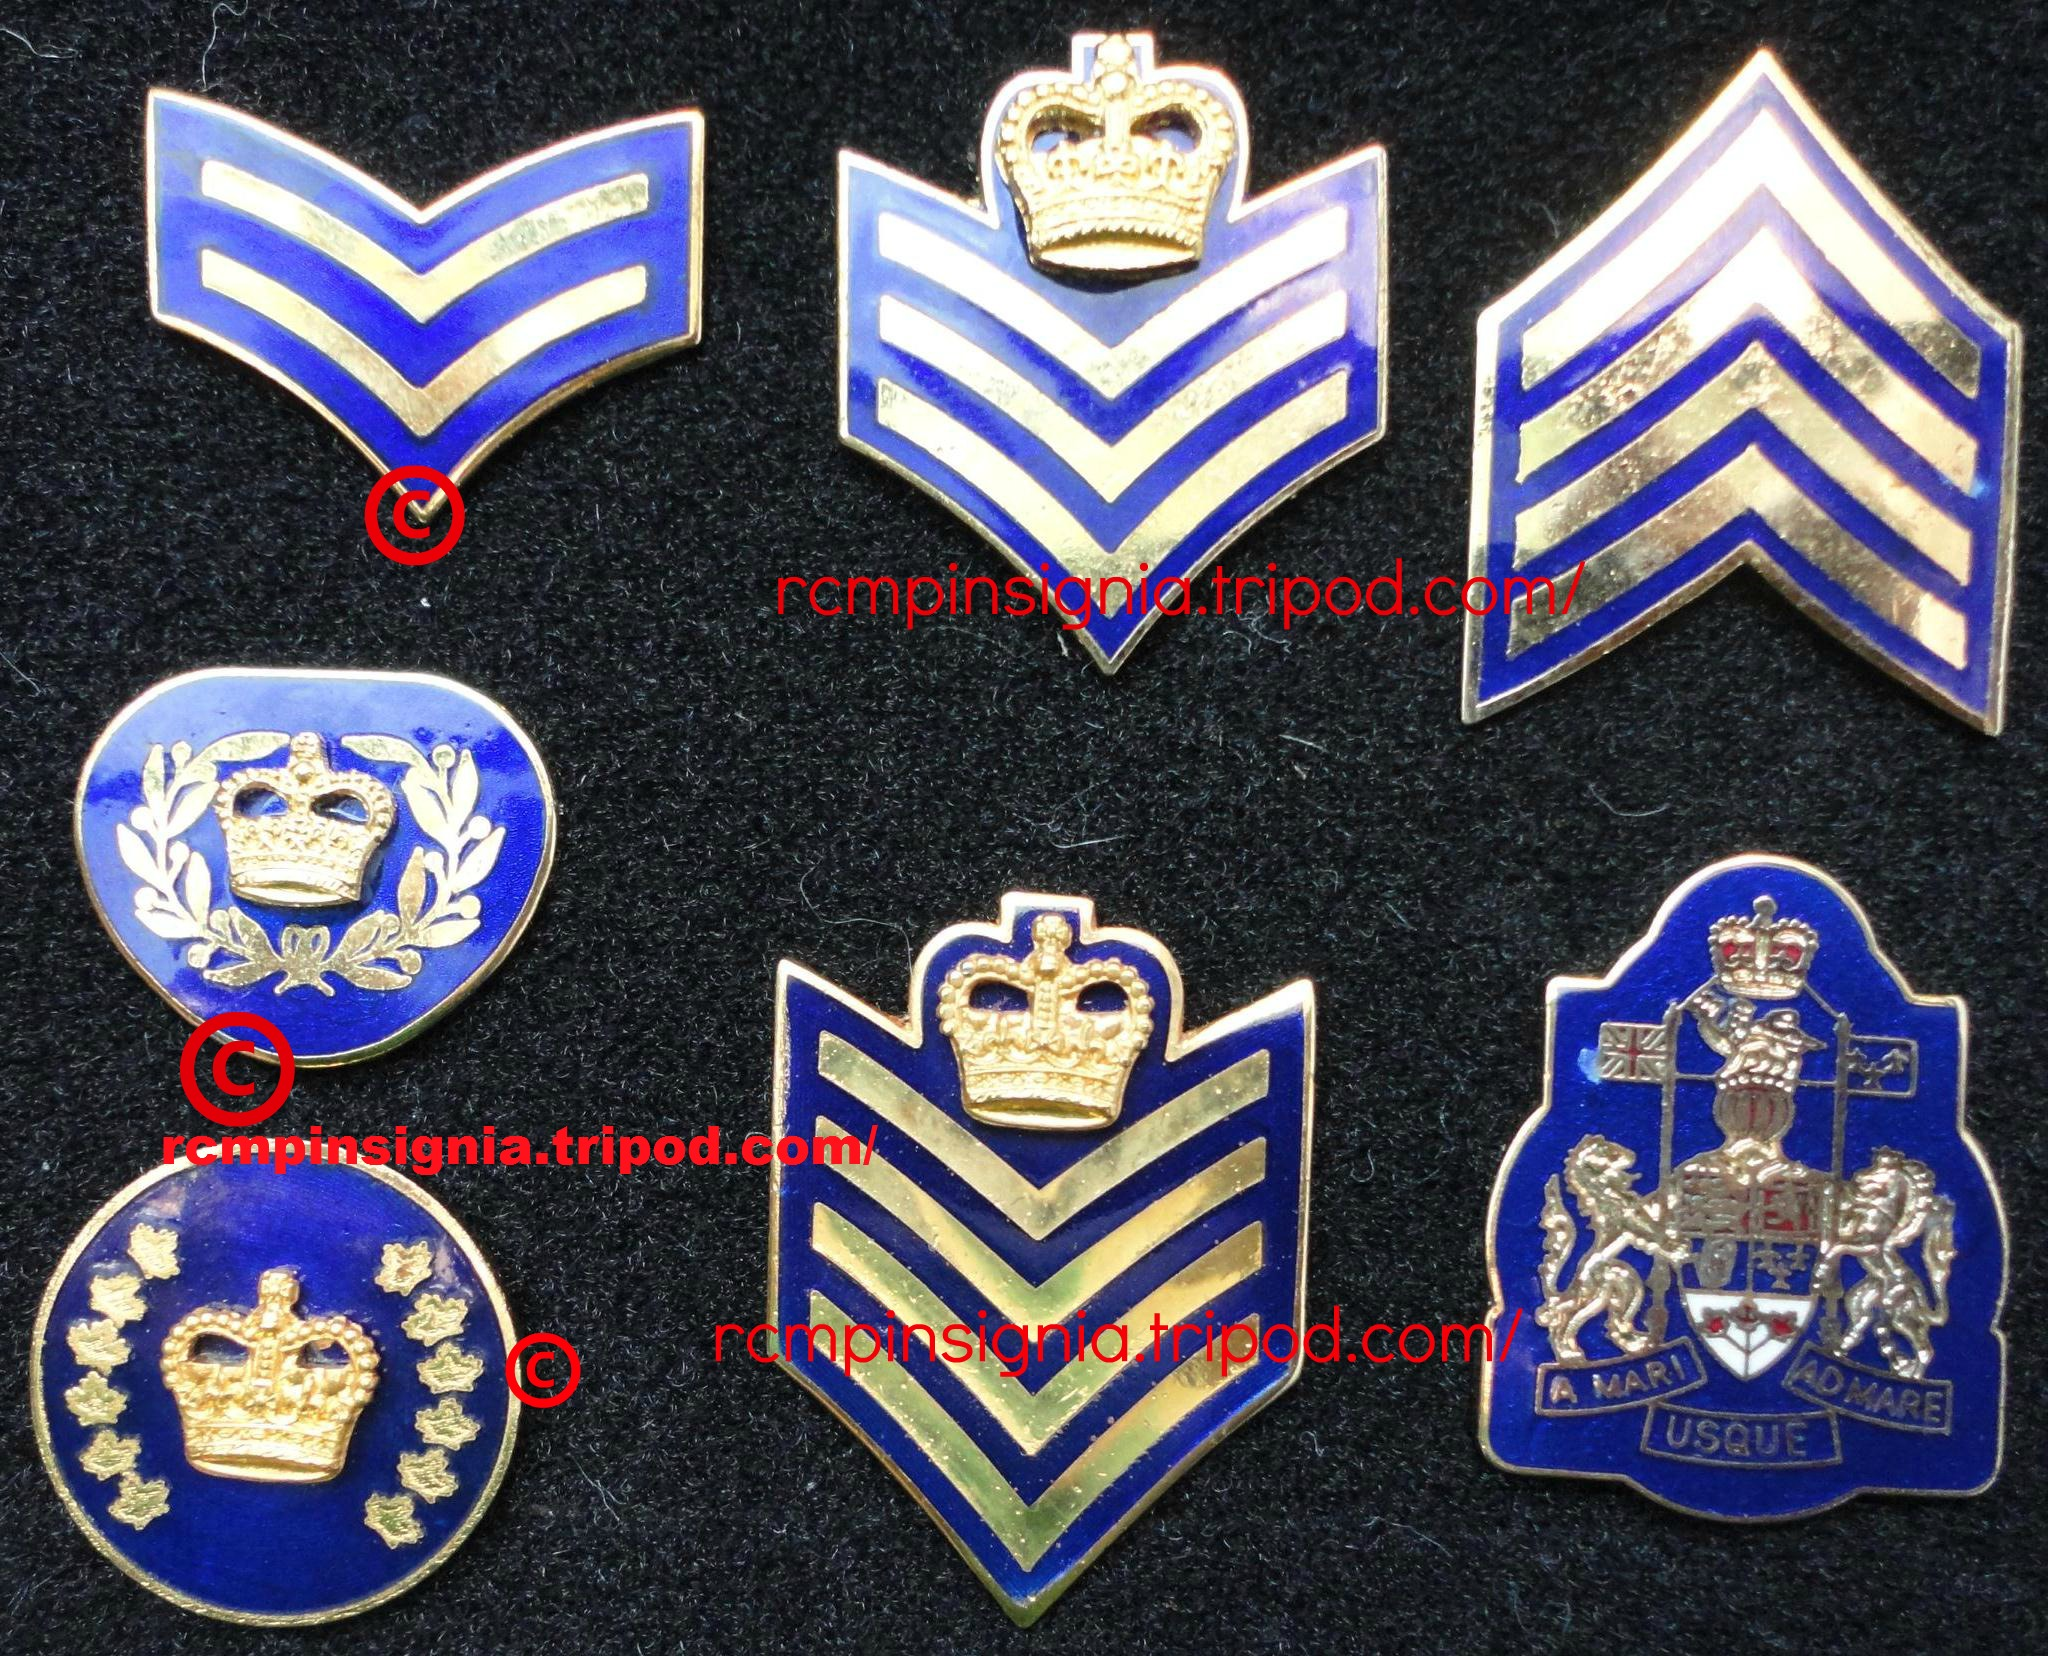 1915901 collar rank pins2.jpg?1392580765